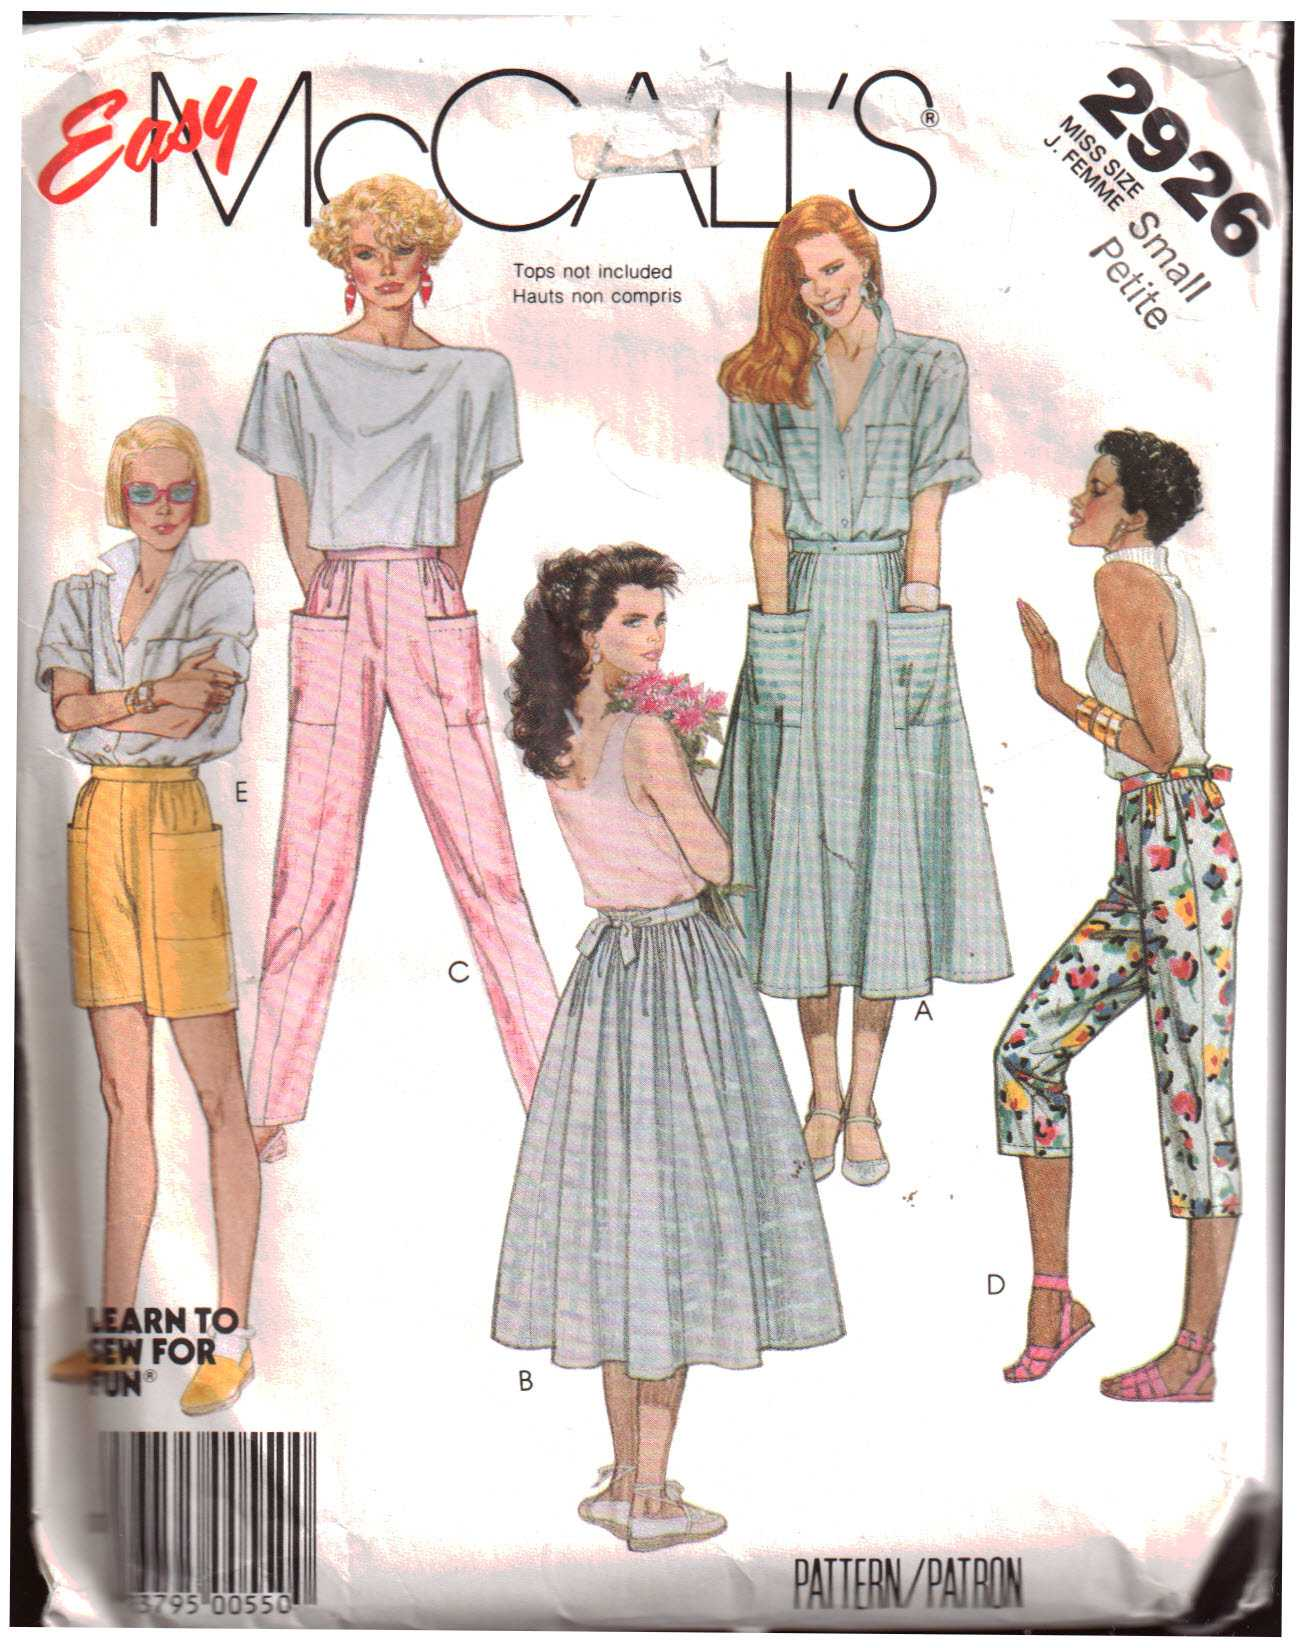 1b43e8a28d4a8 McCall's 2926 Skirt, Pants, Shorts Size: 10-12 Used Sewing Pattern